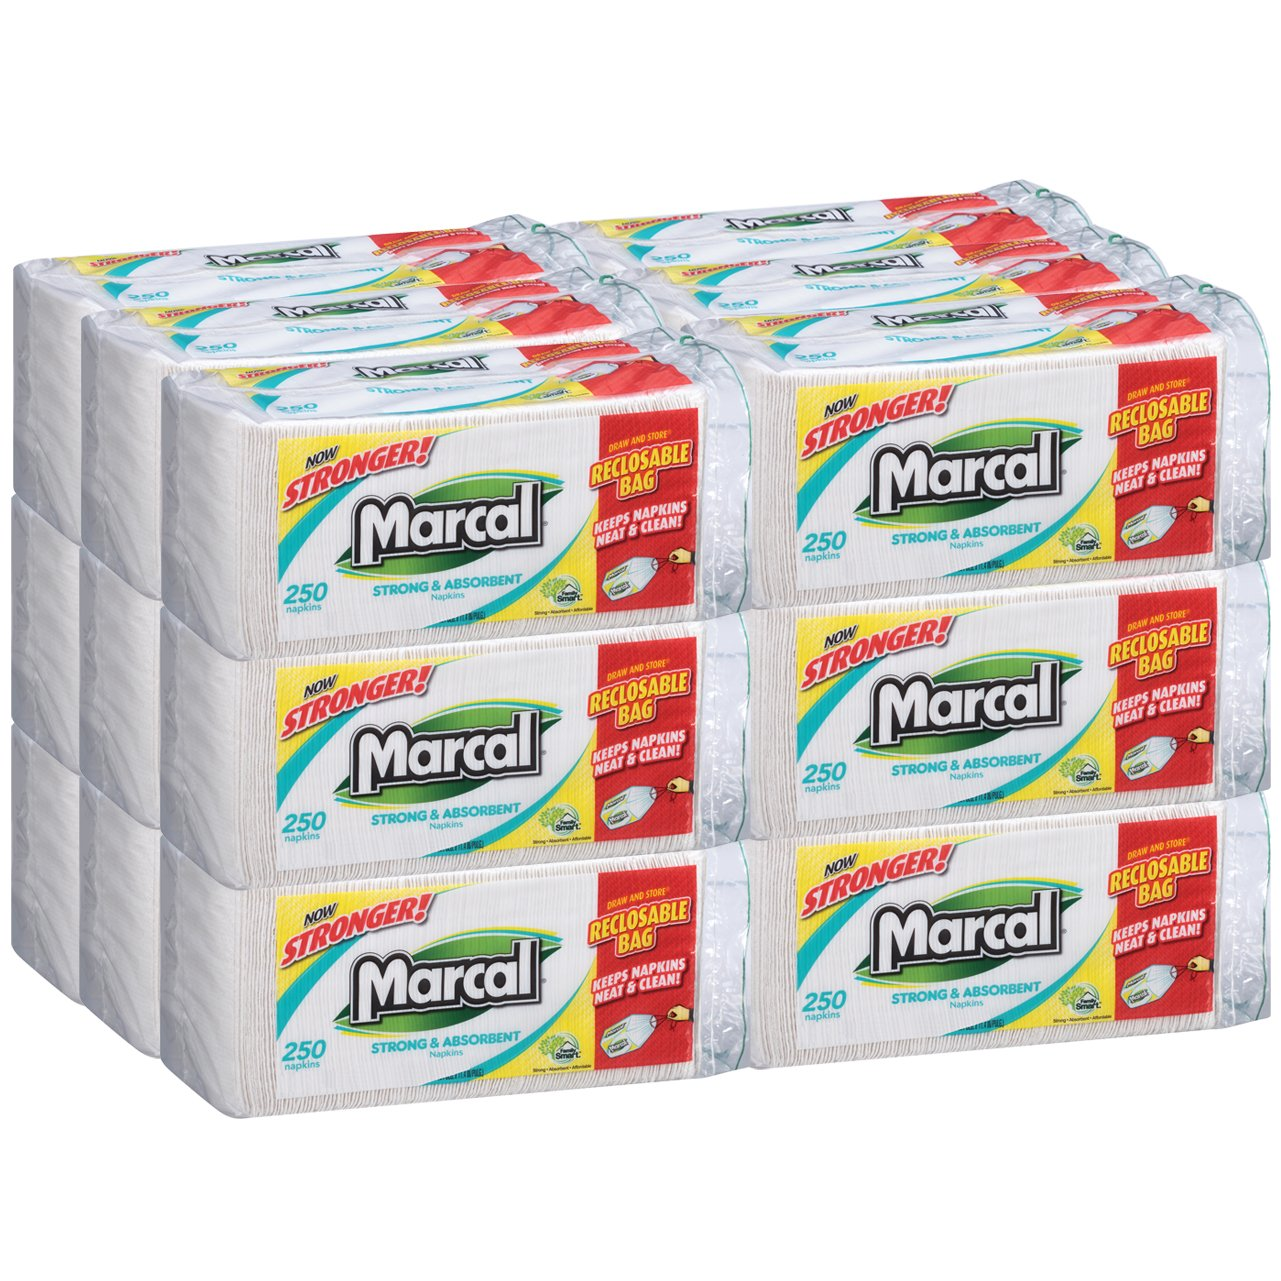 Marcal Napkins - 250 Napkins in a Resealable Drawstring Bag, 18 Packs per Case - Sustainable, Disposable Napkins are Great for Home or Office 03015